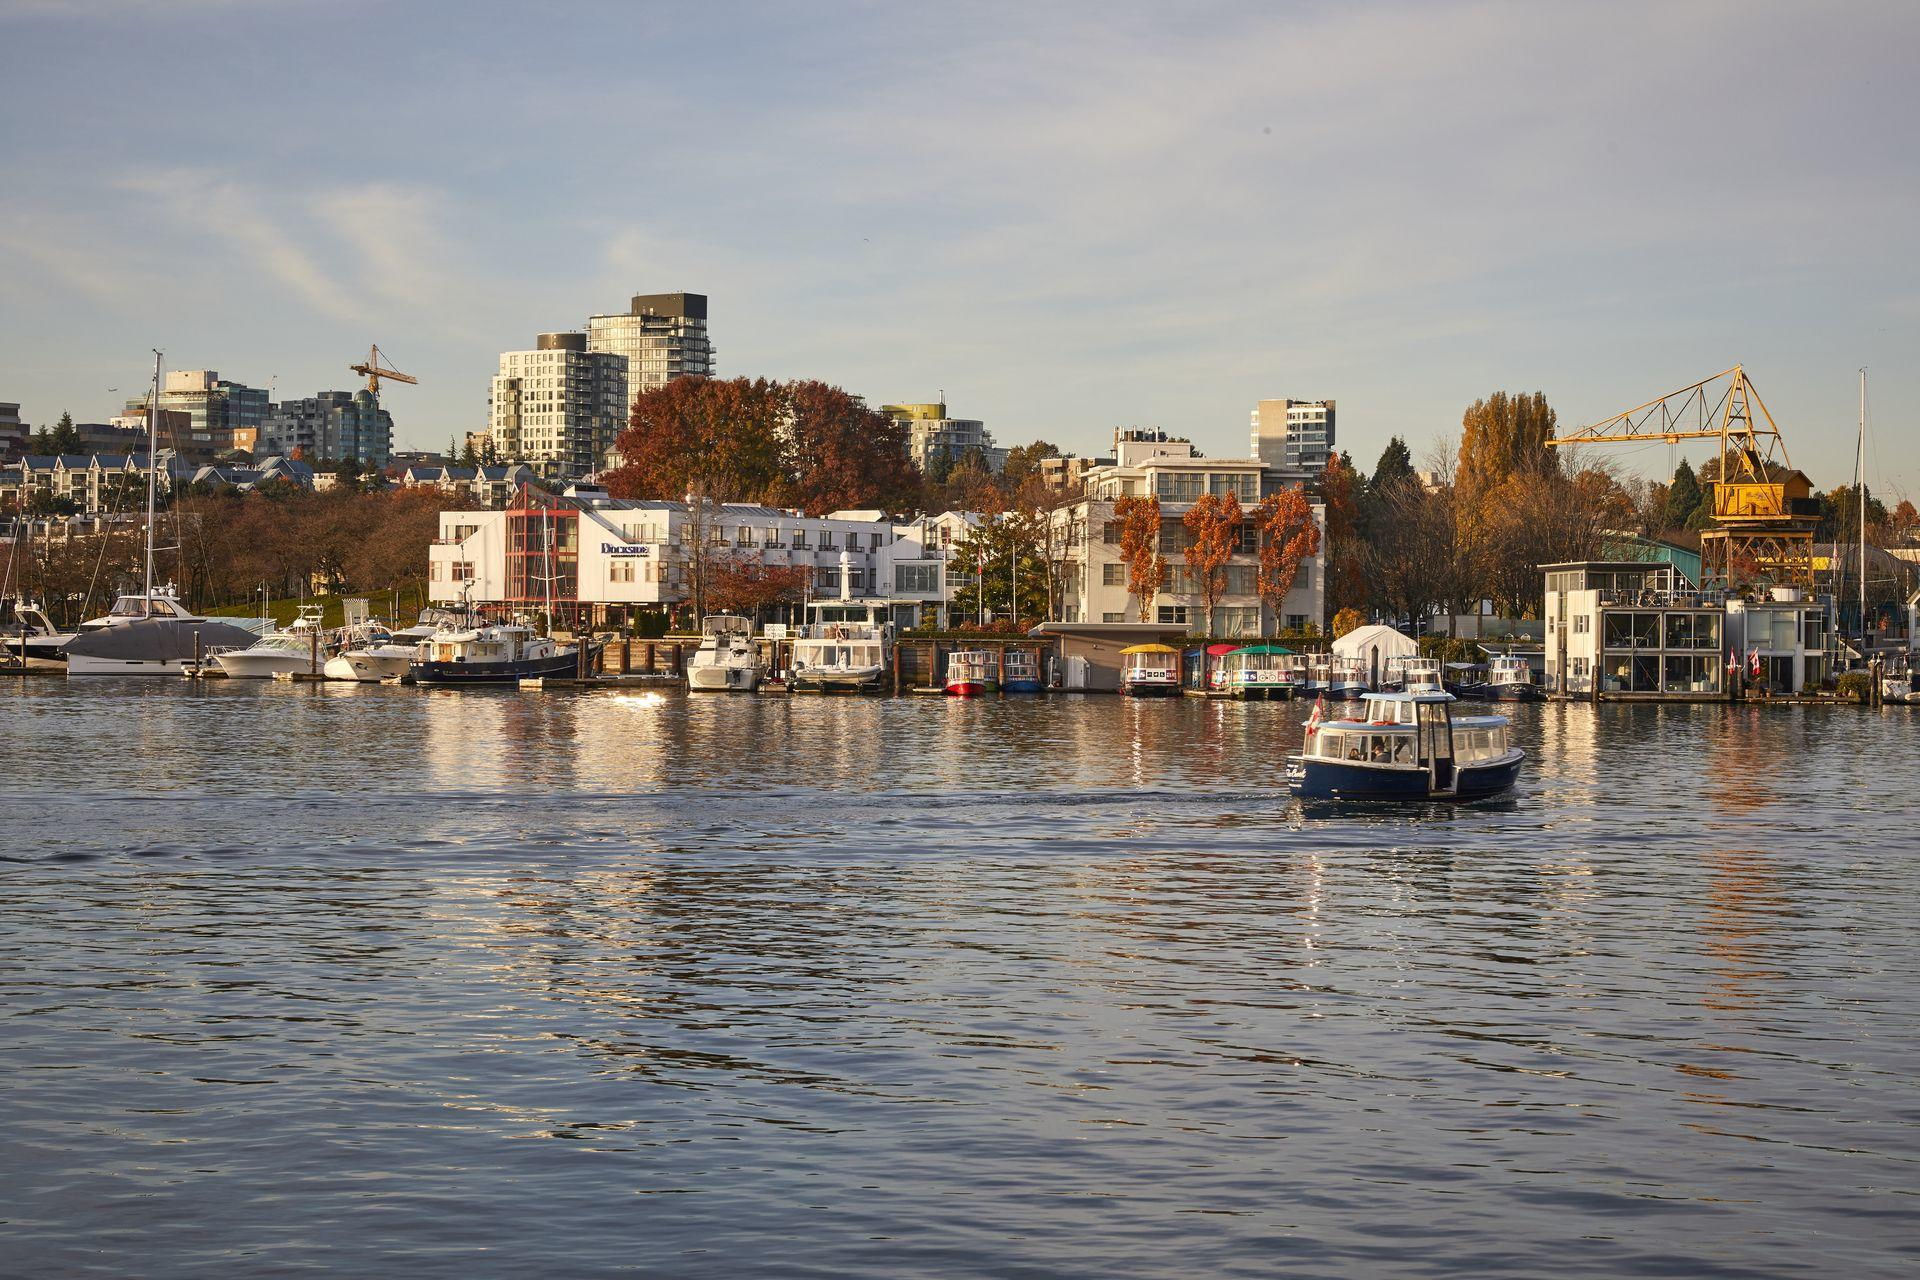 granville island hotel waterfront boutique hotel false creek va